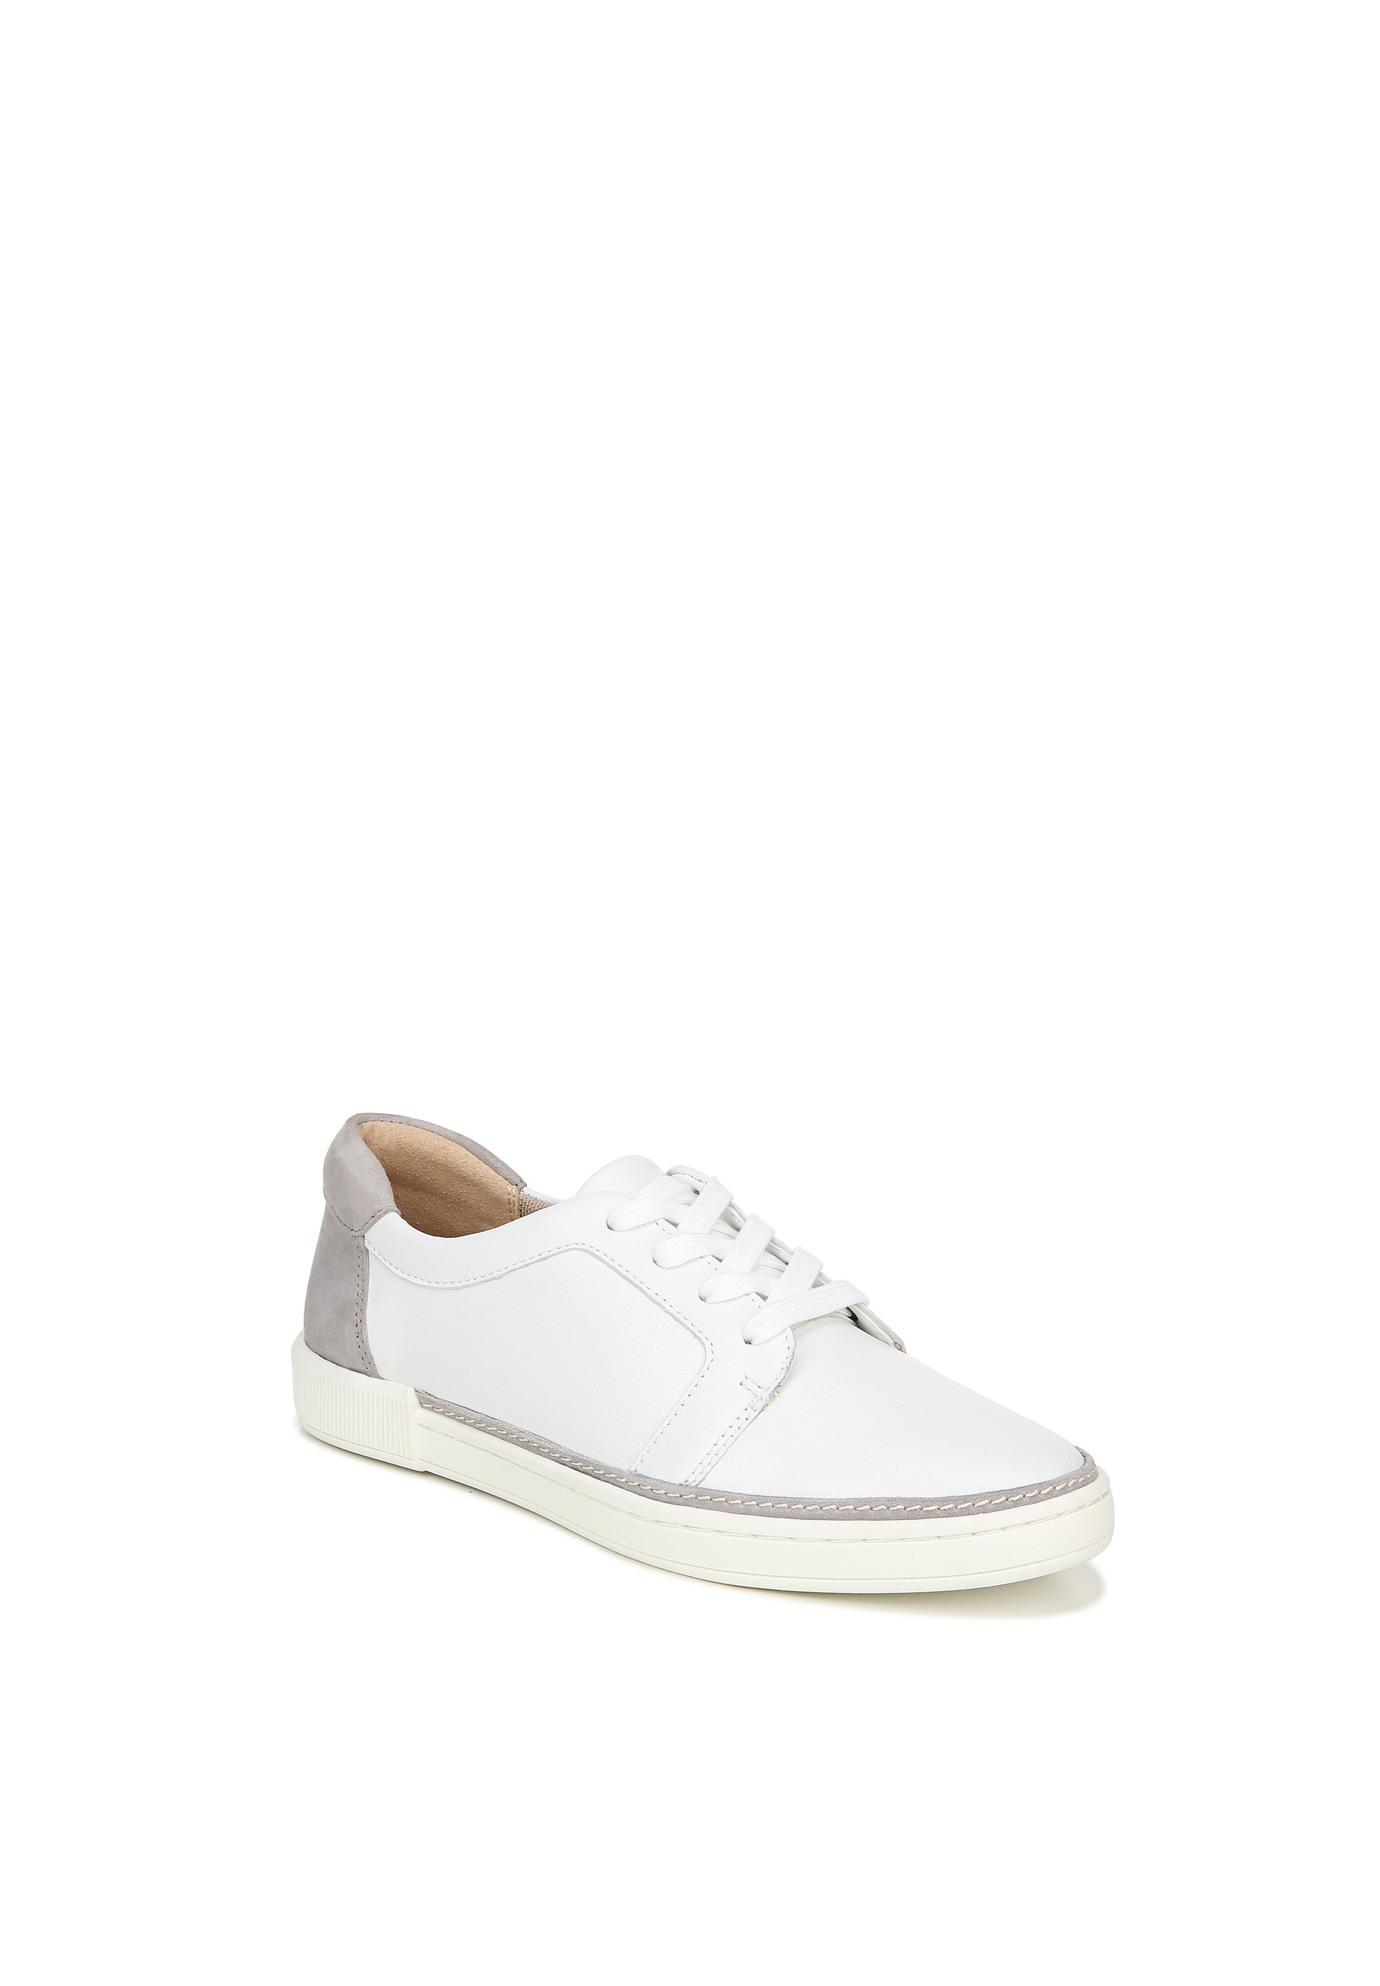 Jane Sneaker by Naturalizer,